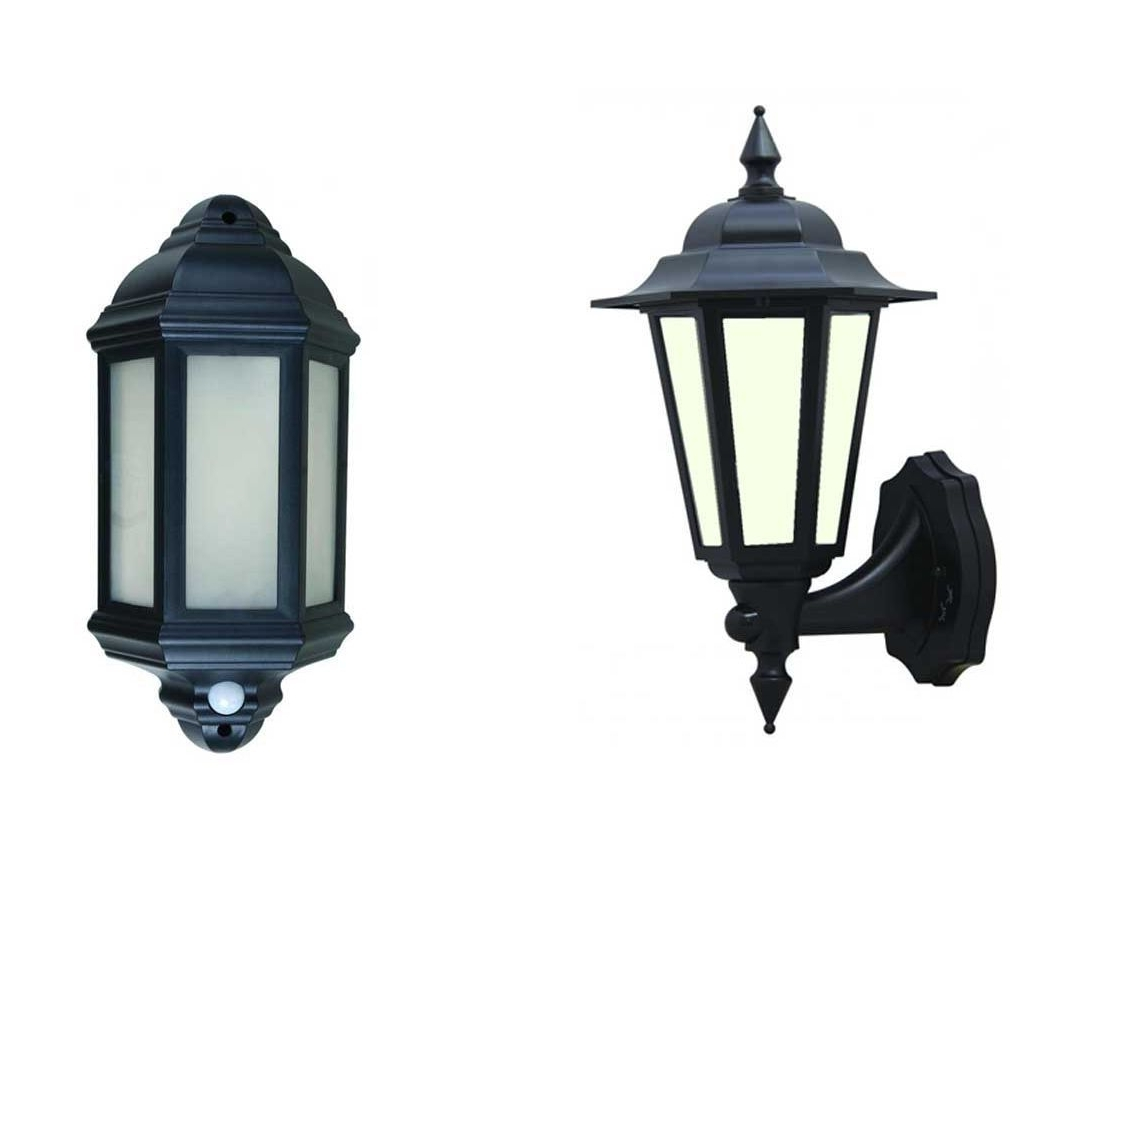 Well Liked Led Outdoor Garden Wall Half Lantern Pir Black Ip44 External 7 Watt Intended For Outdoor Lanterns With Pir (View 14 of 20)